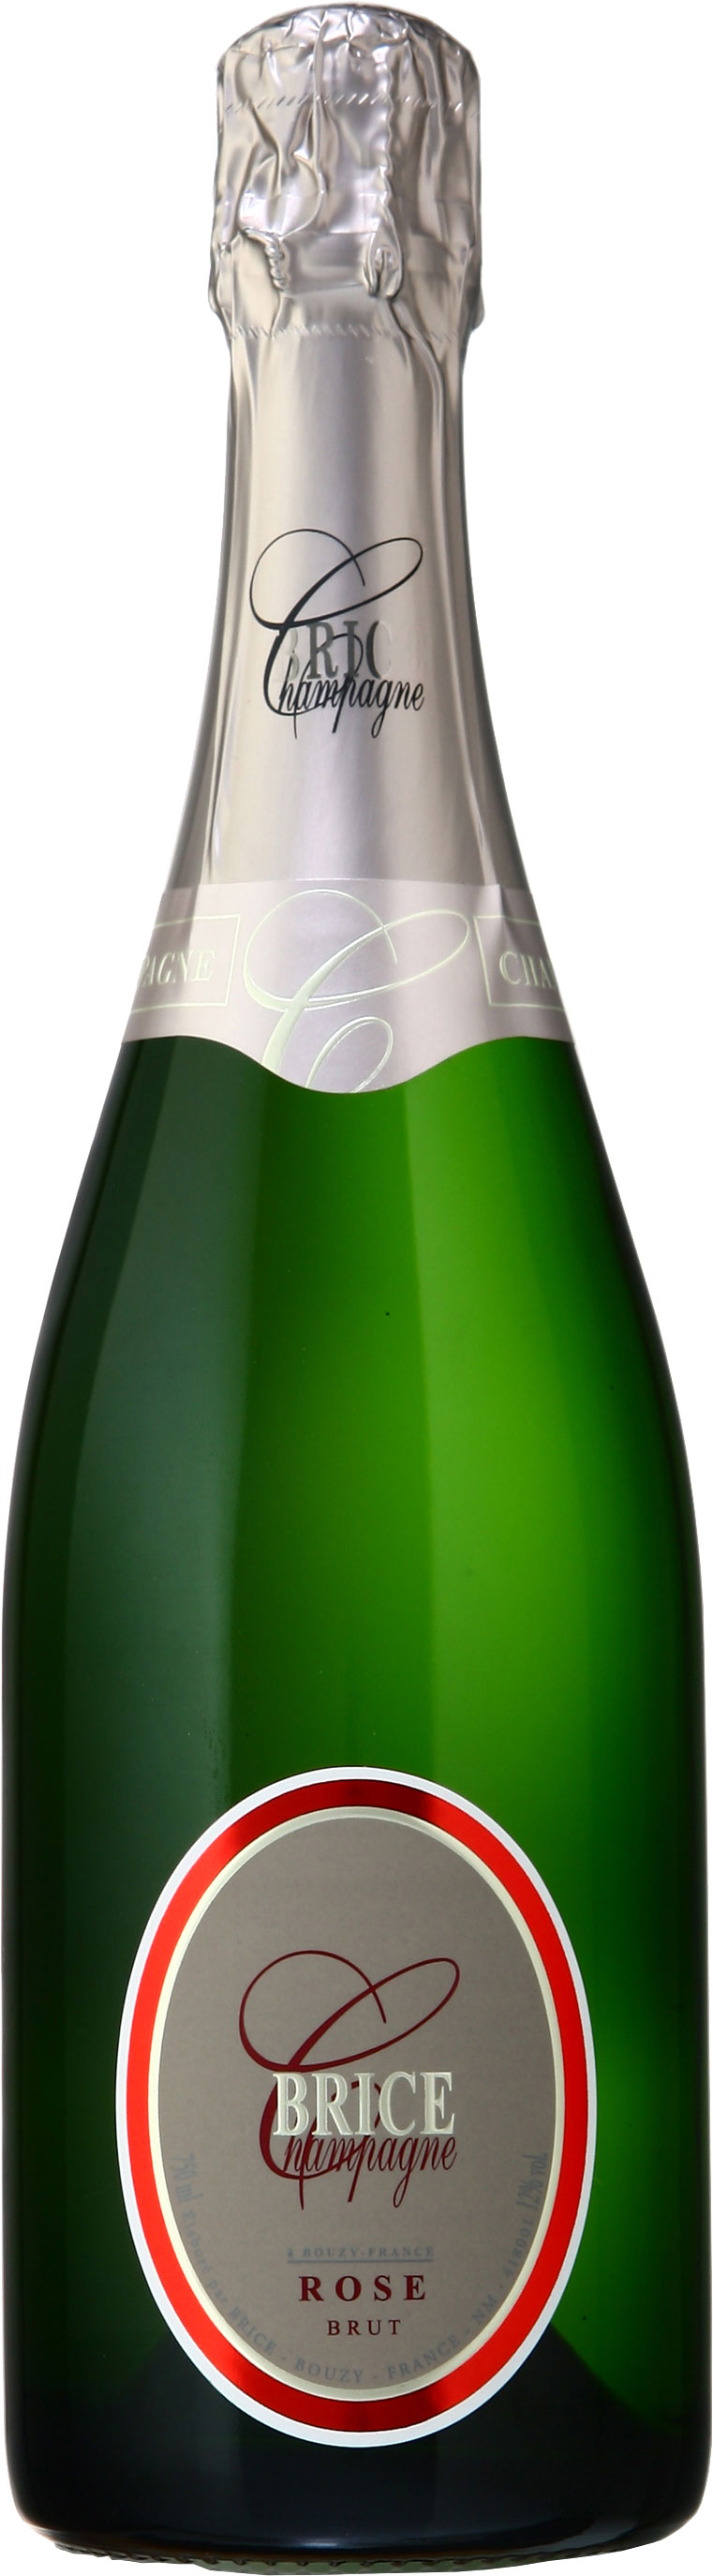 Champagne Brice - Brut Rose NV 75cl Bottle